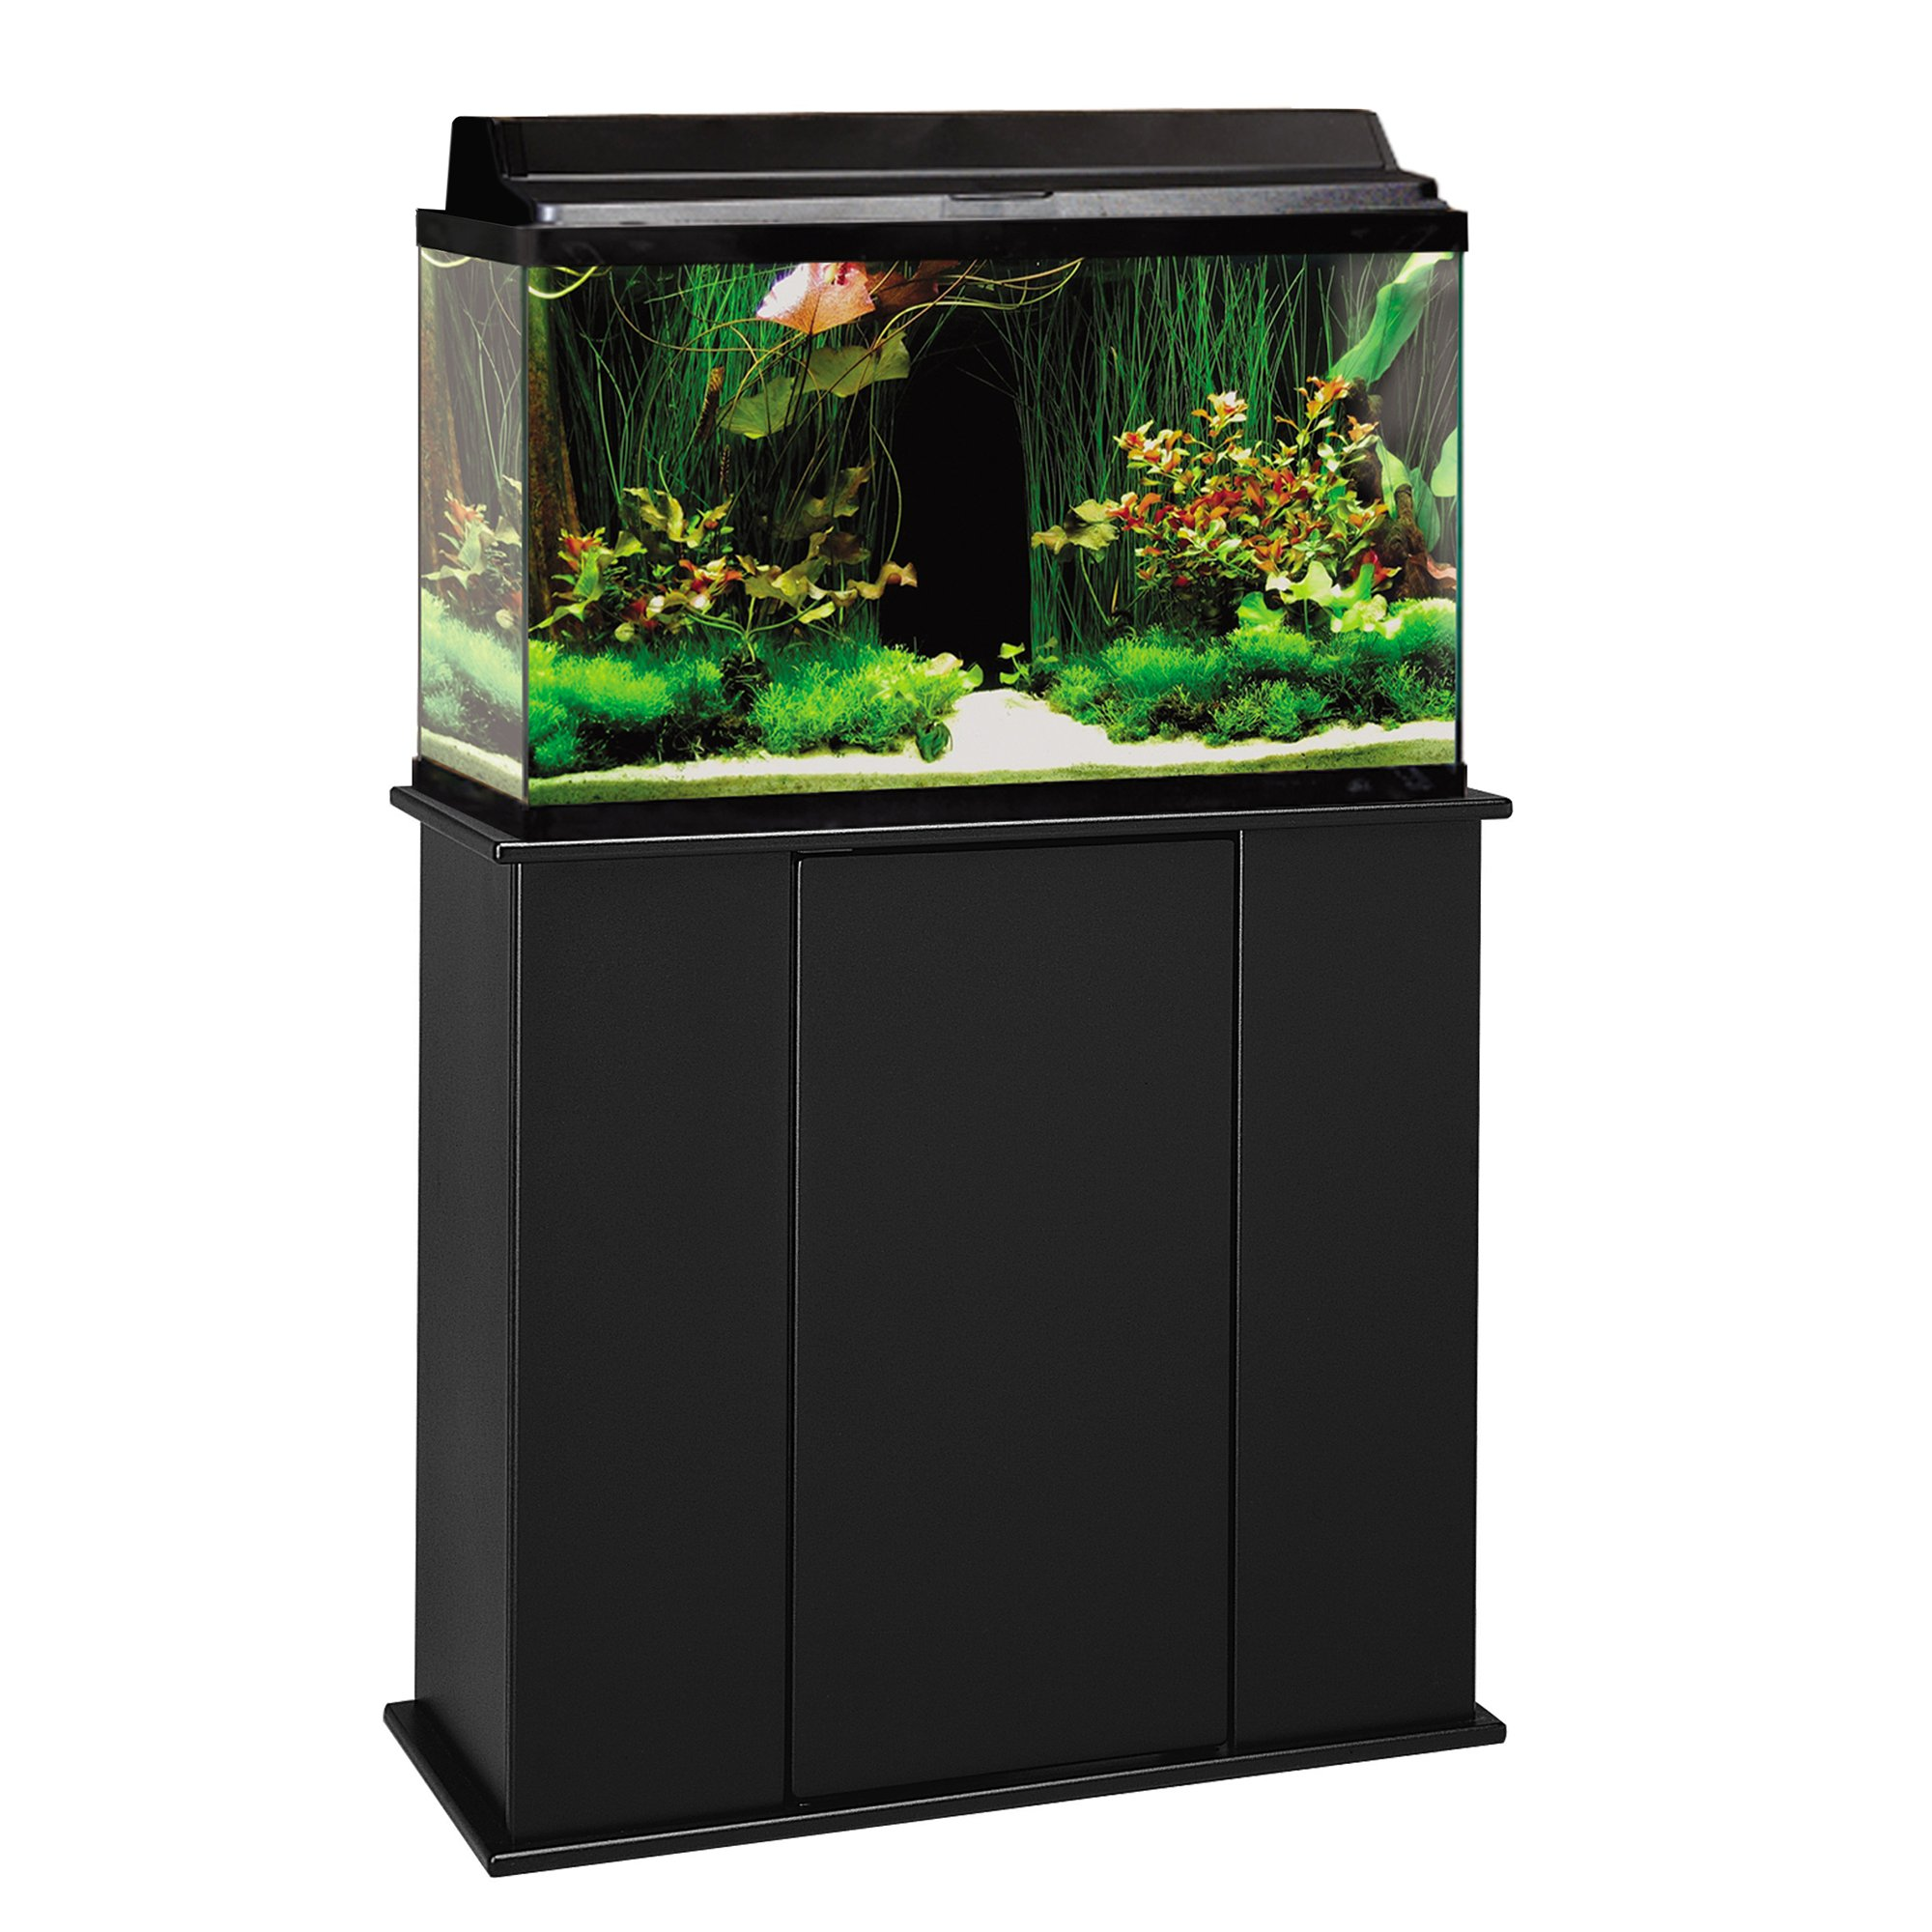 Aquatic fundamentals 29 37 gallon upright aquarium stand for 55 gallon fish tank petco